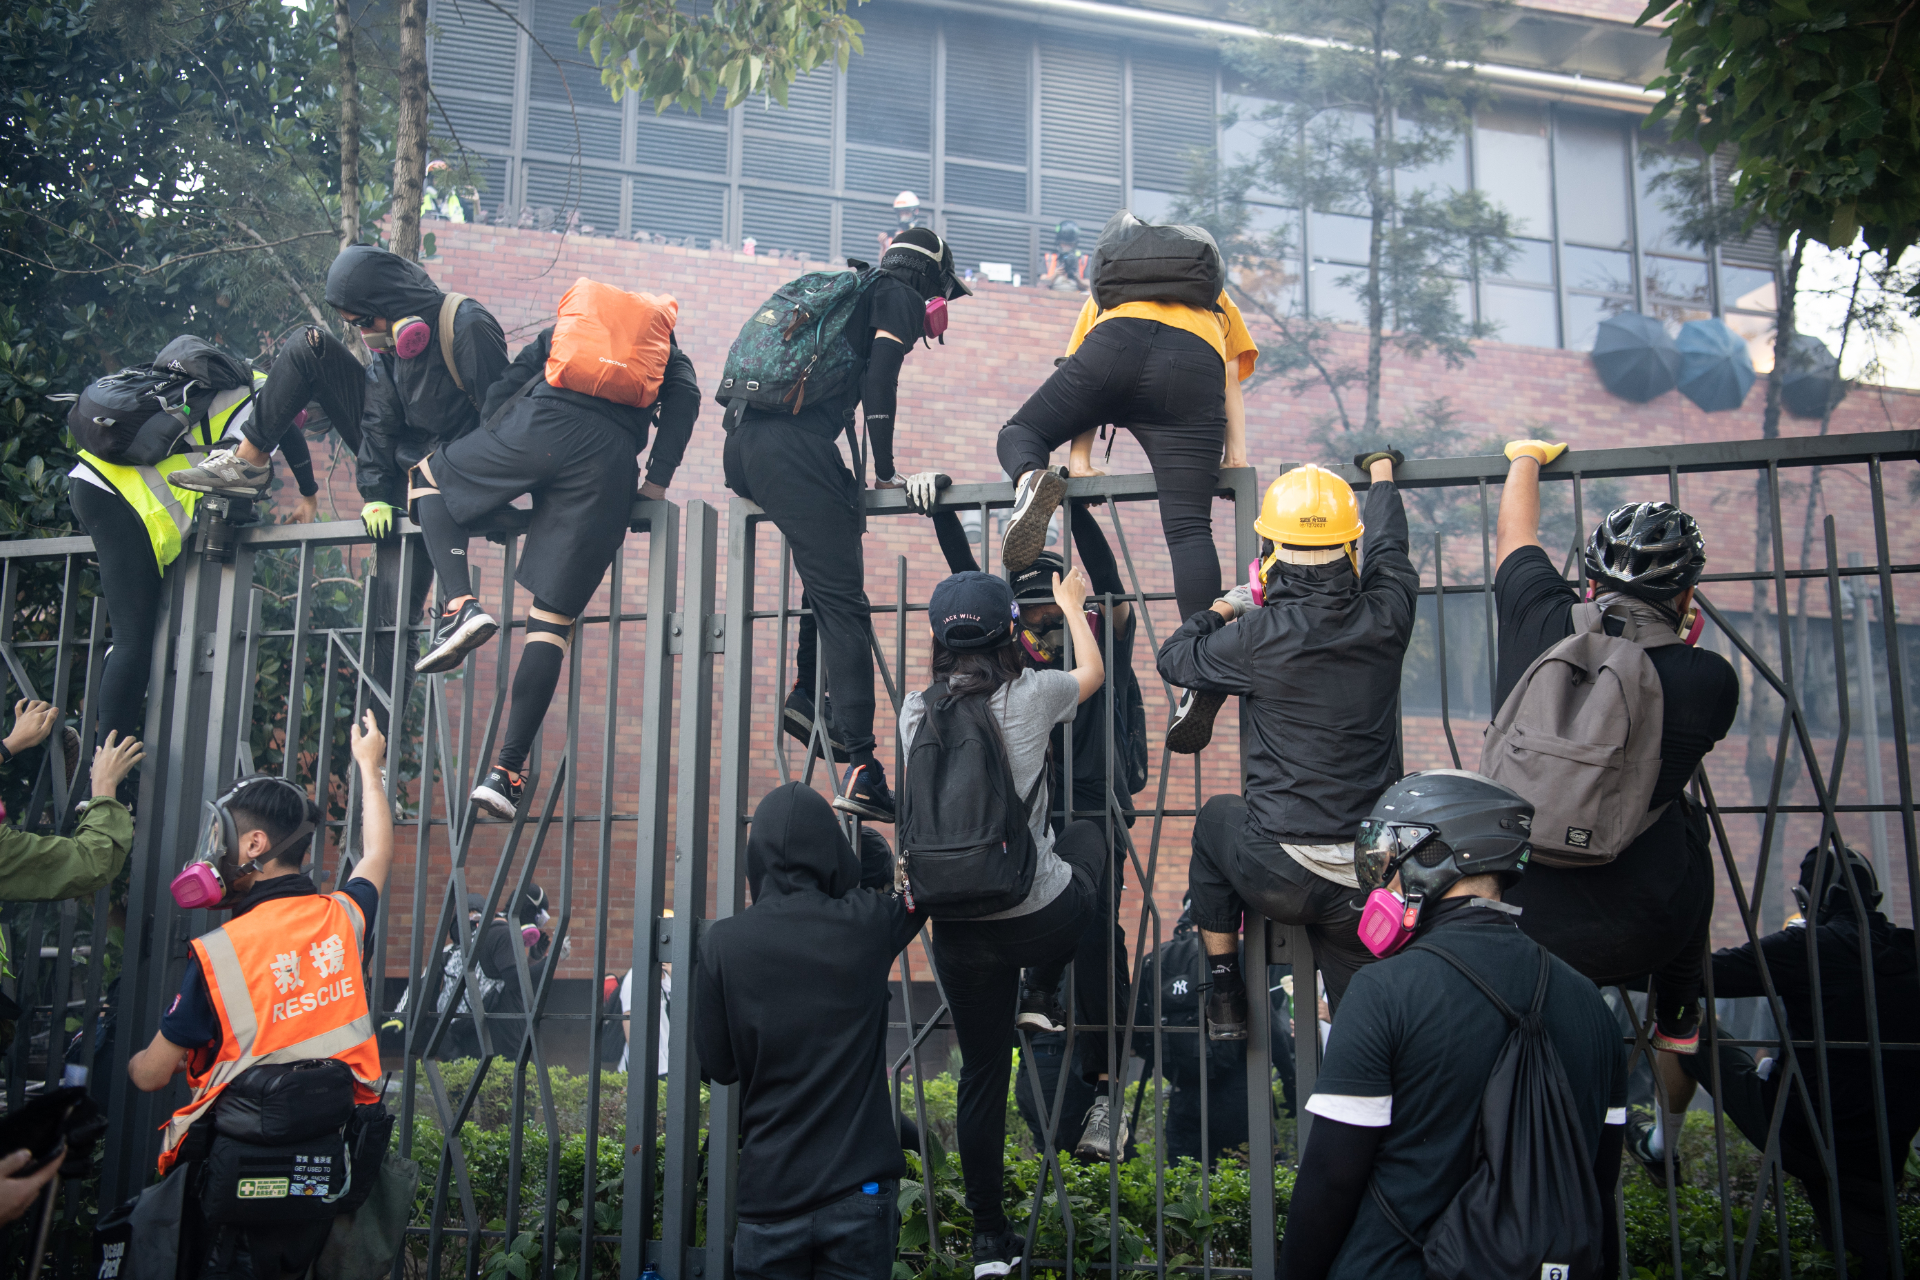 Protesters climb over fences